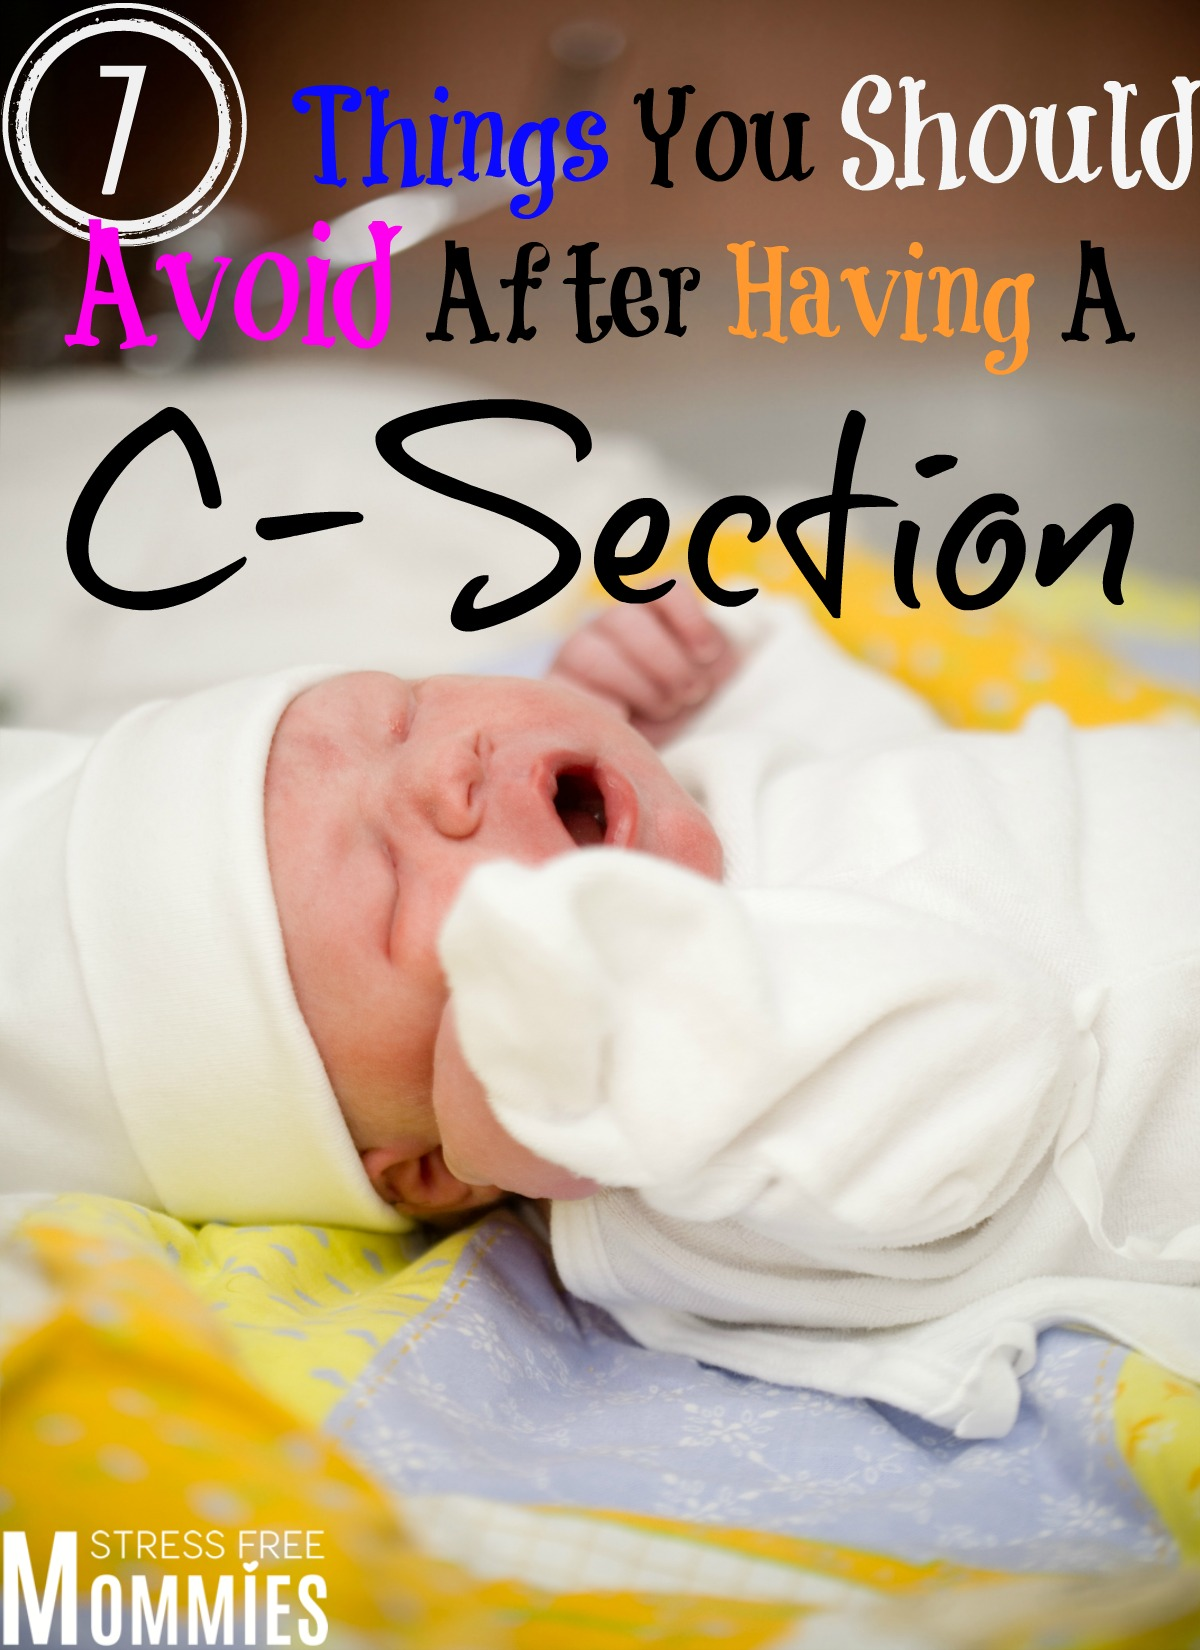 Are you recovering from a c-section? Here\'s a beneficial list of what you should avoid after having a c-section. Learn what not to do for a faster healing.